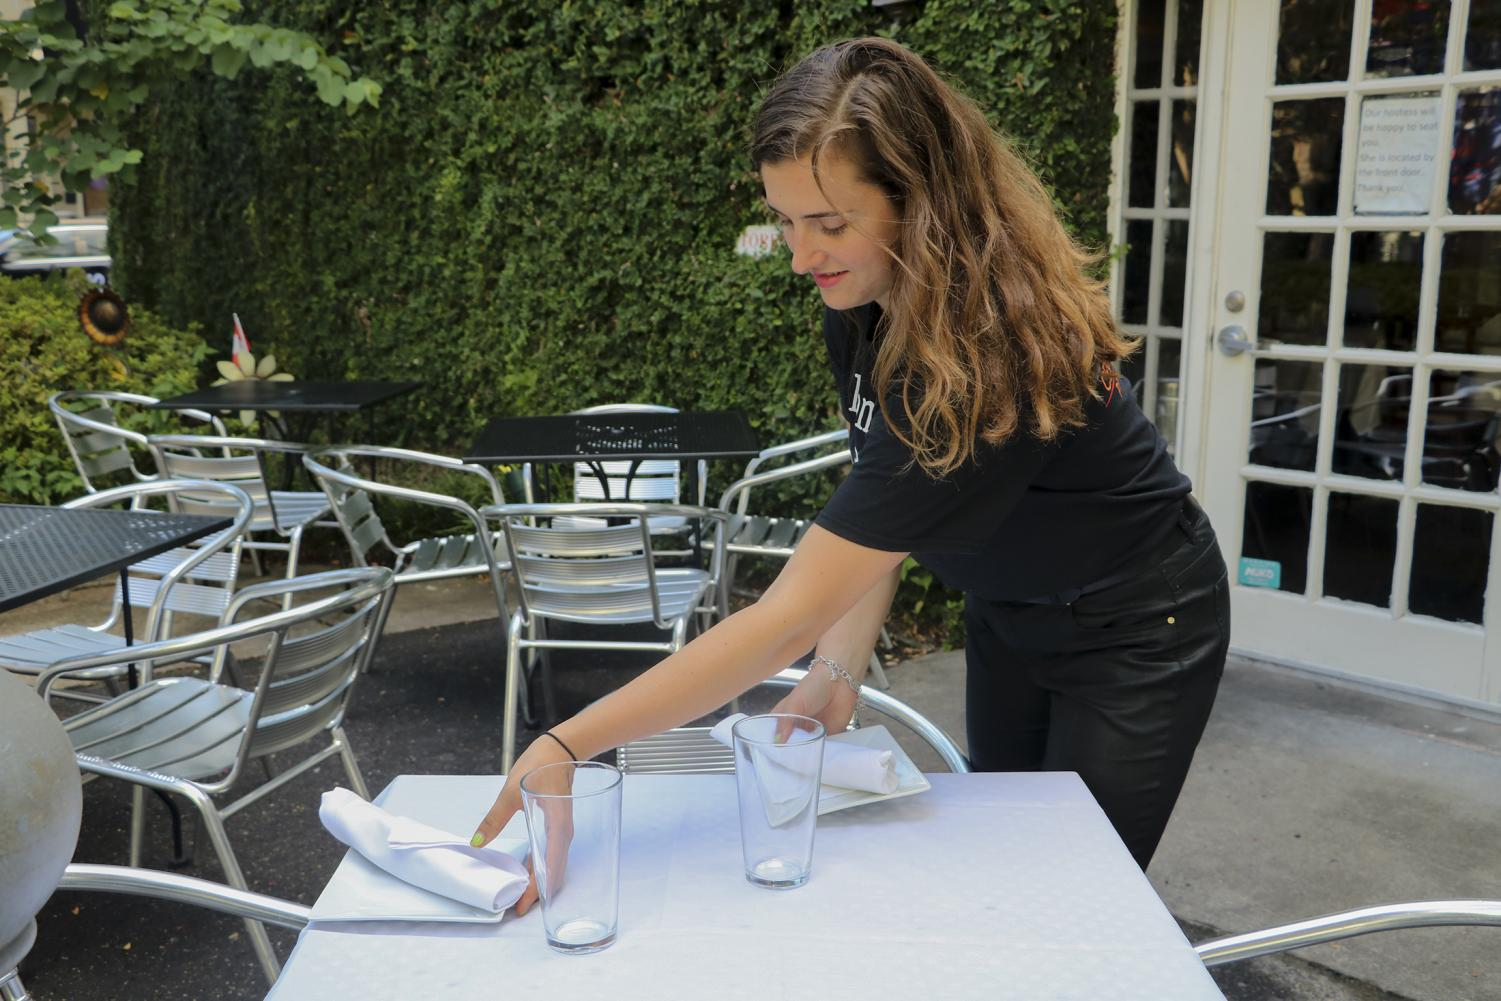 Mass Communications senior, Lili Mae Kinney, sets outside table for guests at Uptown restaurant Tito's Ceviche & Pisco. on Sept. 11, 2019. She has been working there since the summer of the same year.